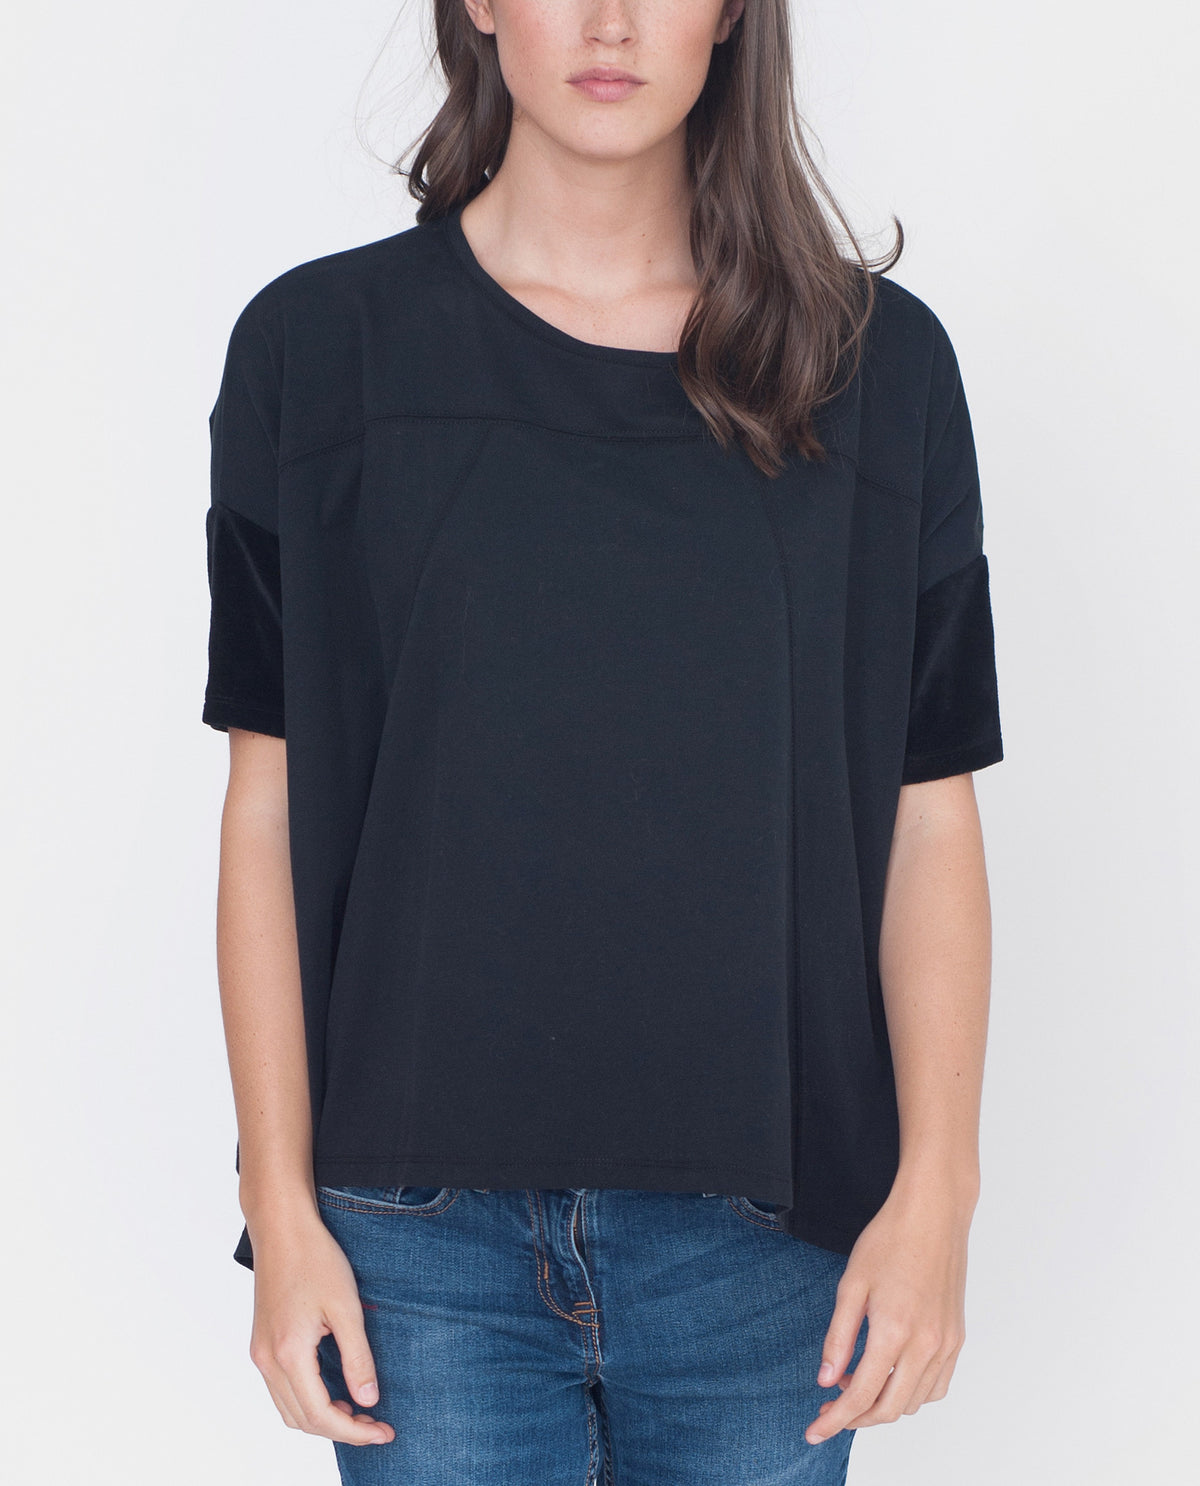 JESSIE Organic Cotton Top